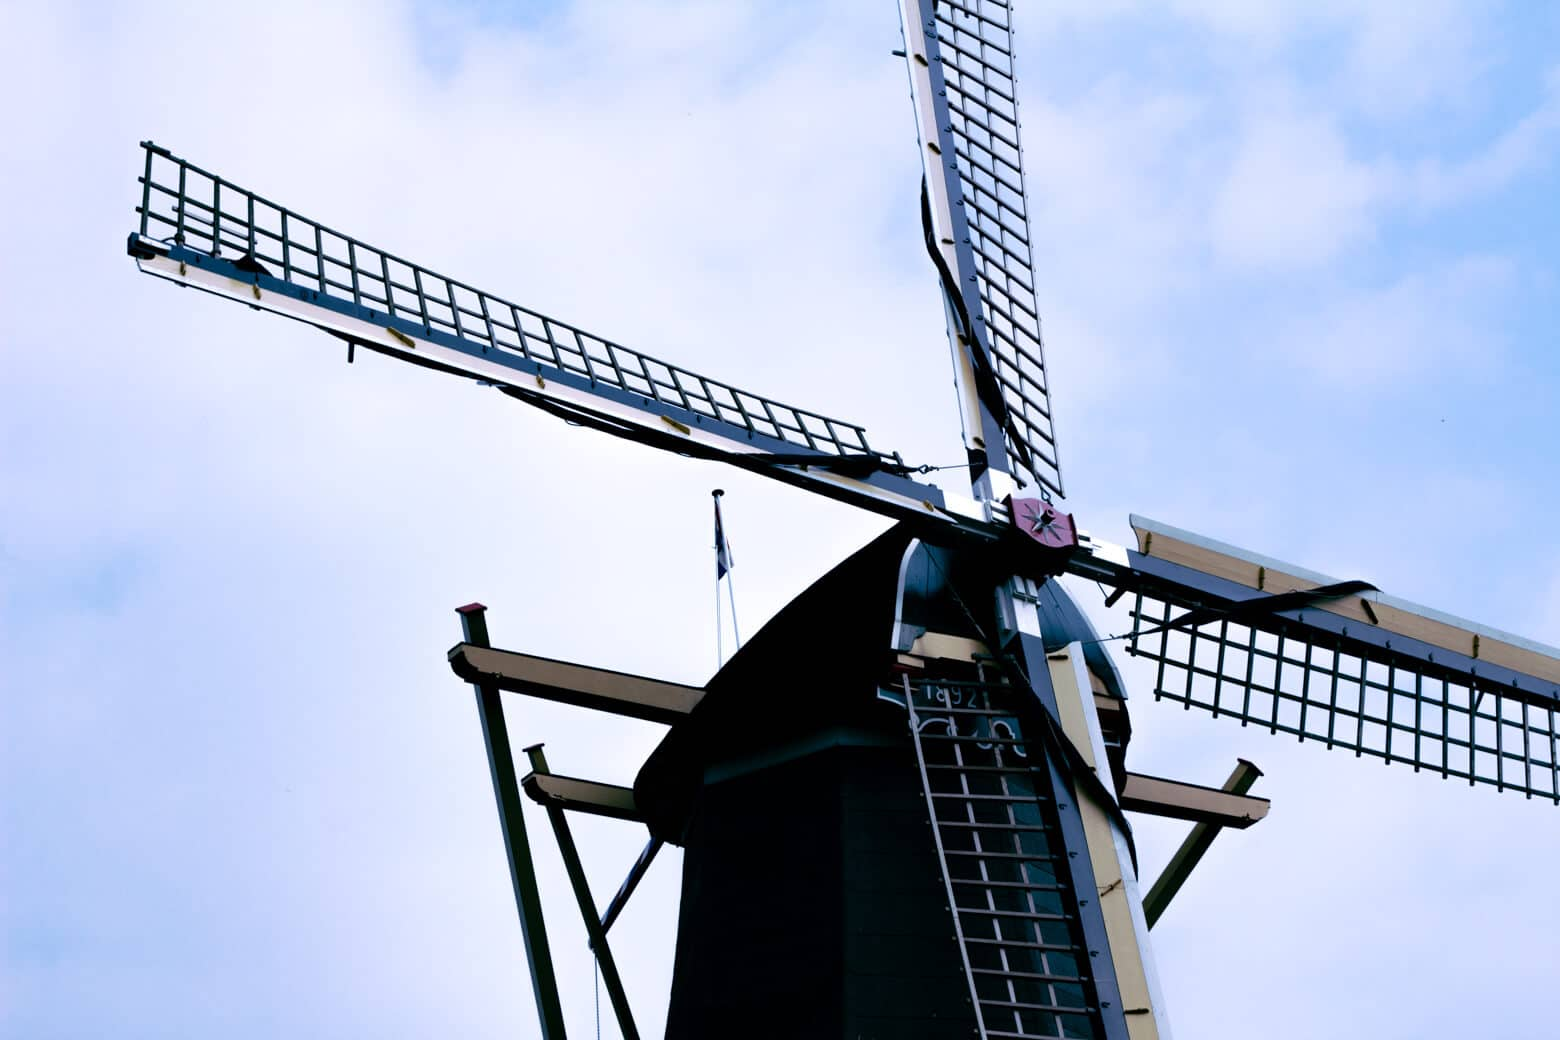 Dutch Windmill at Keukenhof in the Netherlands